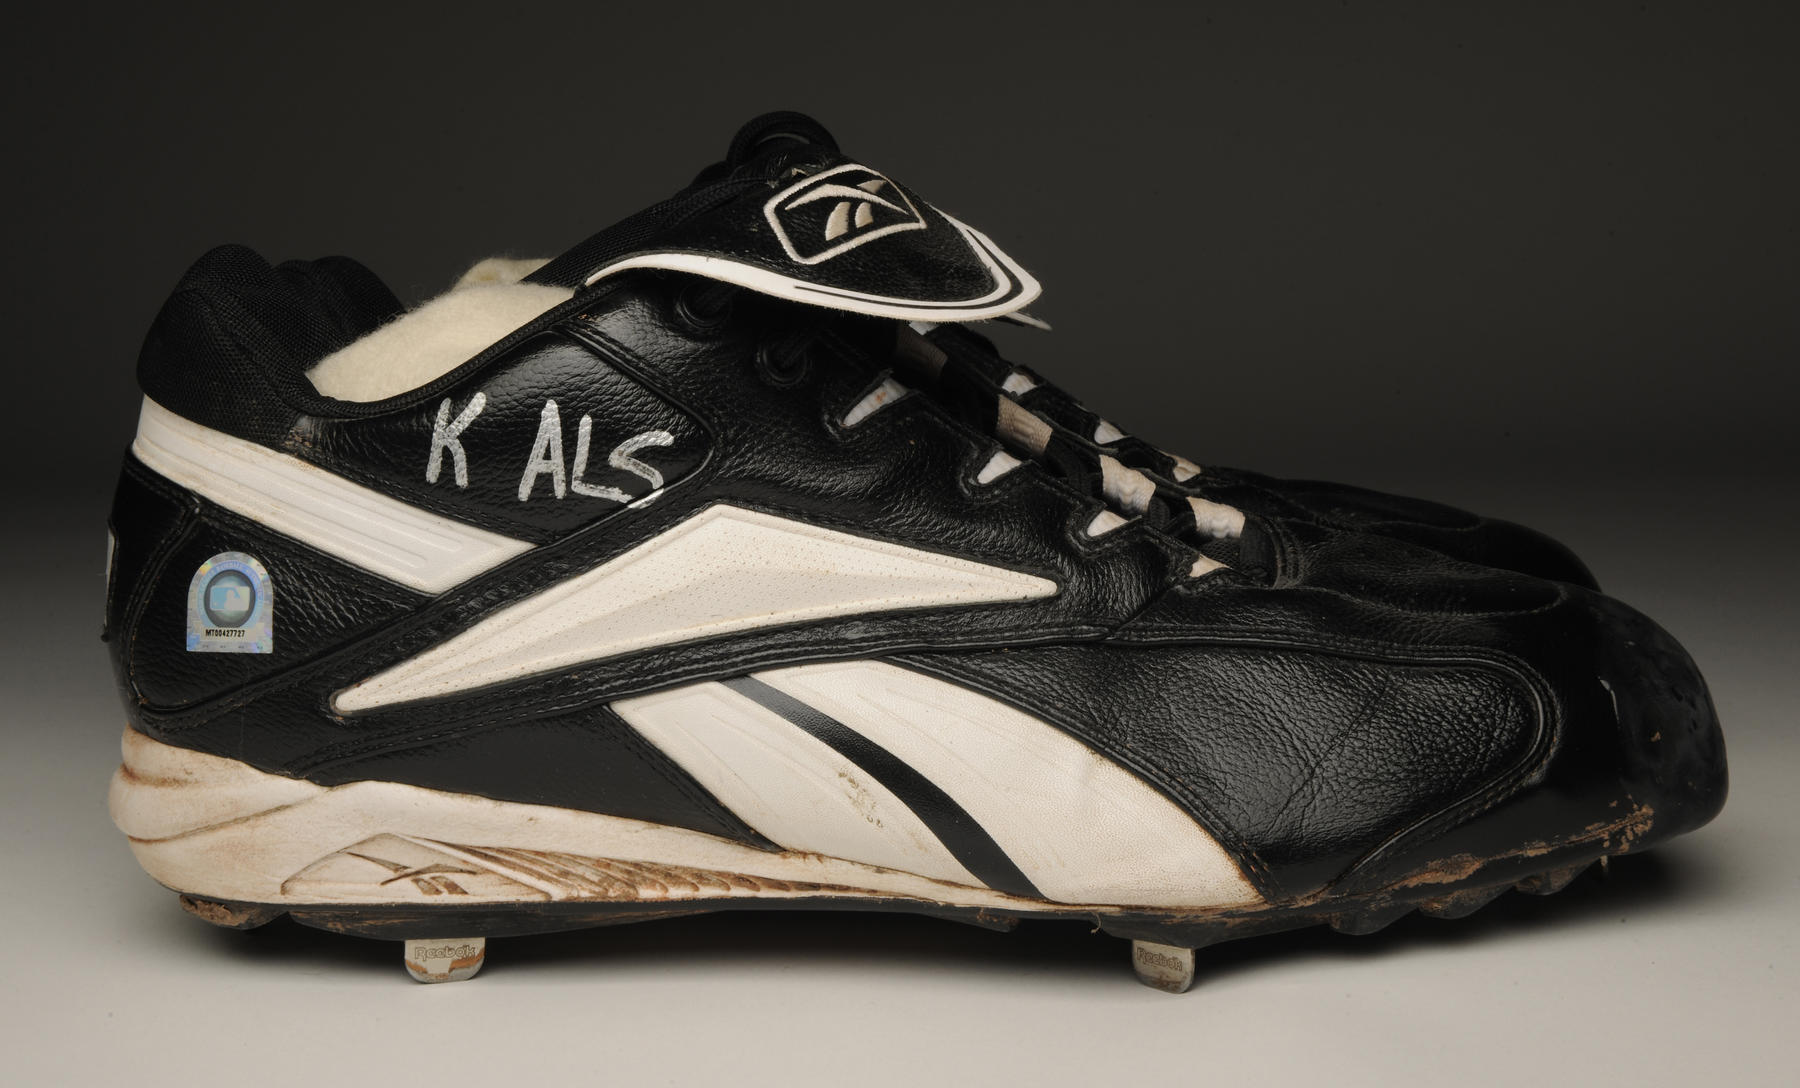 """Curt Schilling's right cleat worn during the 2004 World Series with """"K ALS"""" written in silver marker. B-337.2004 (Milo Stewart Jr. / National Baseball Hall of Fame and Museum)"""